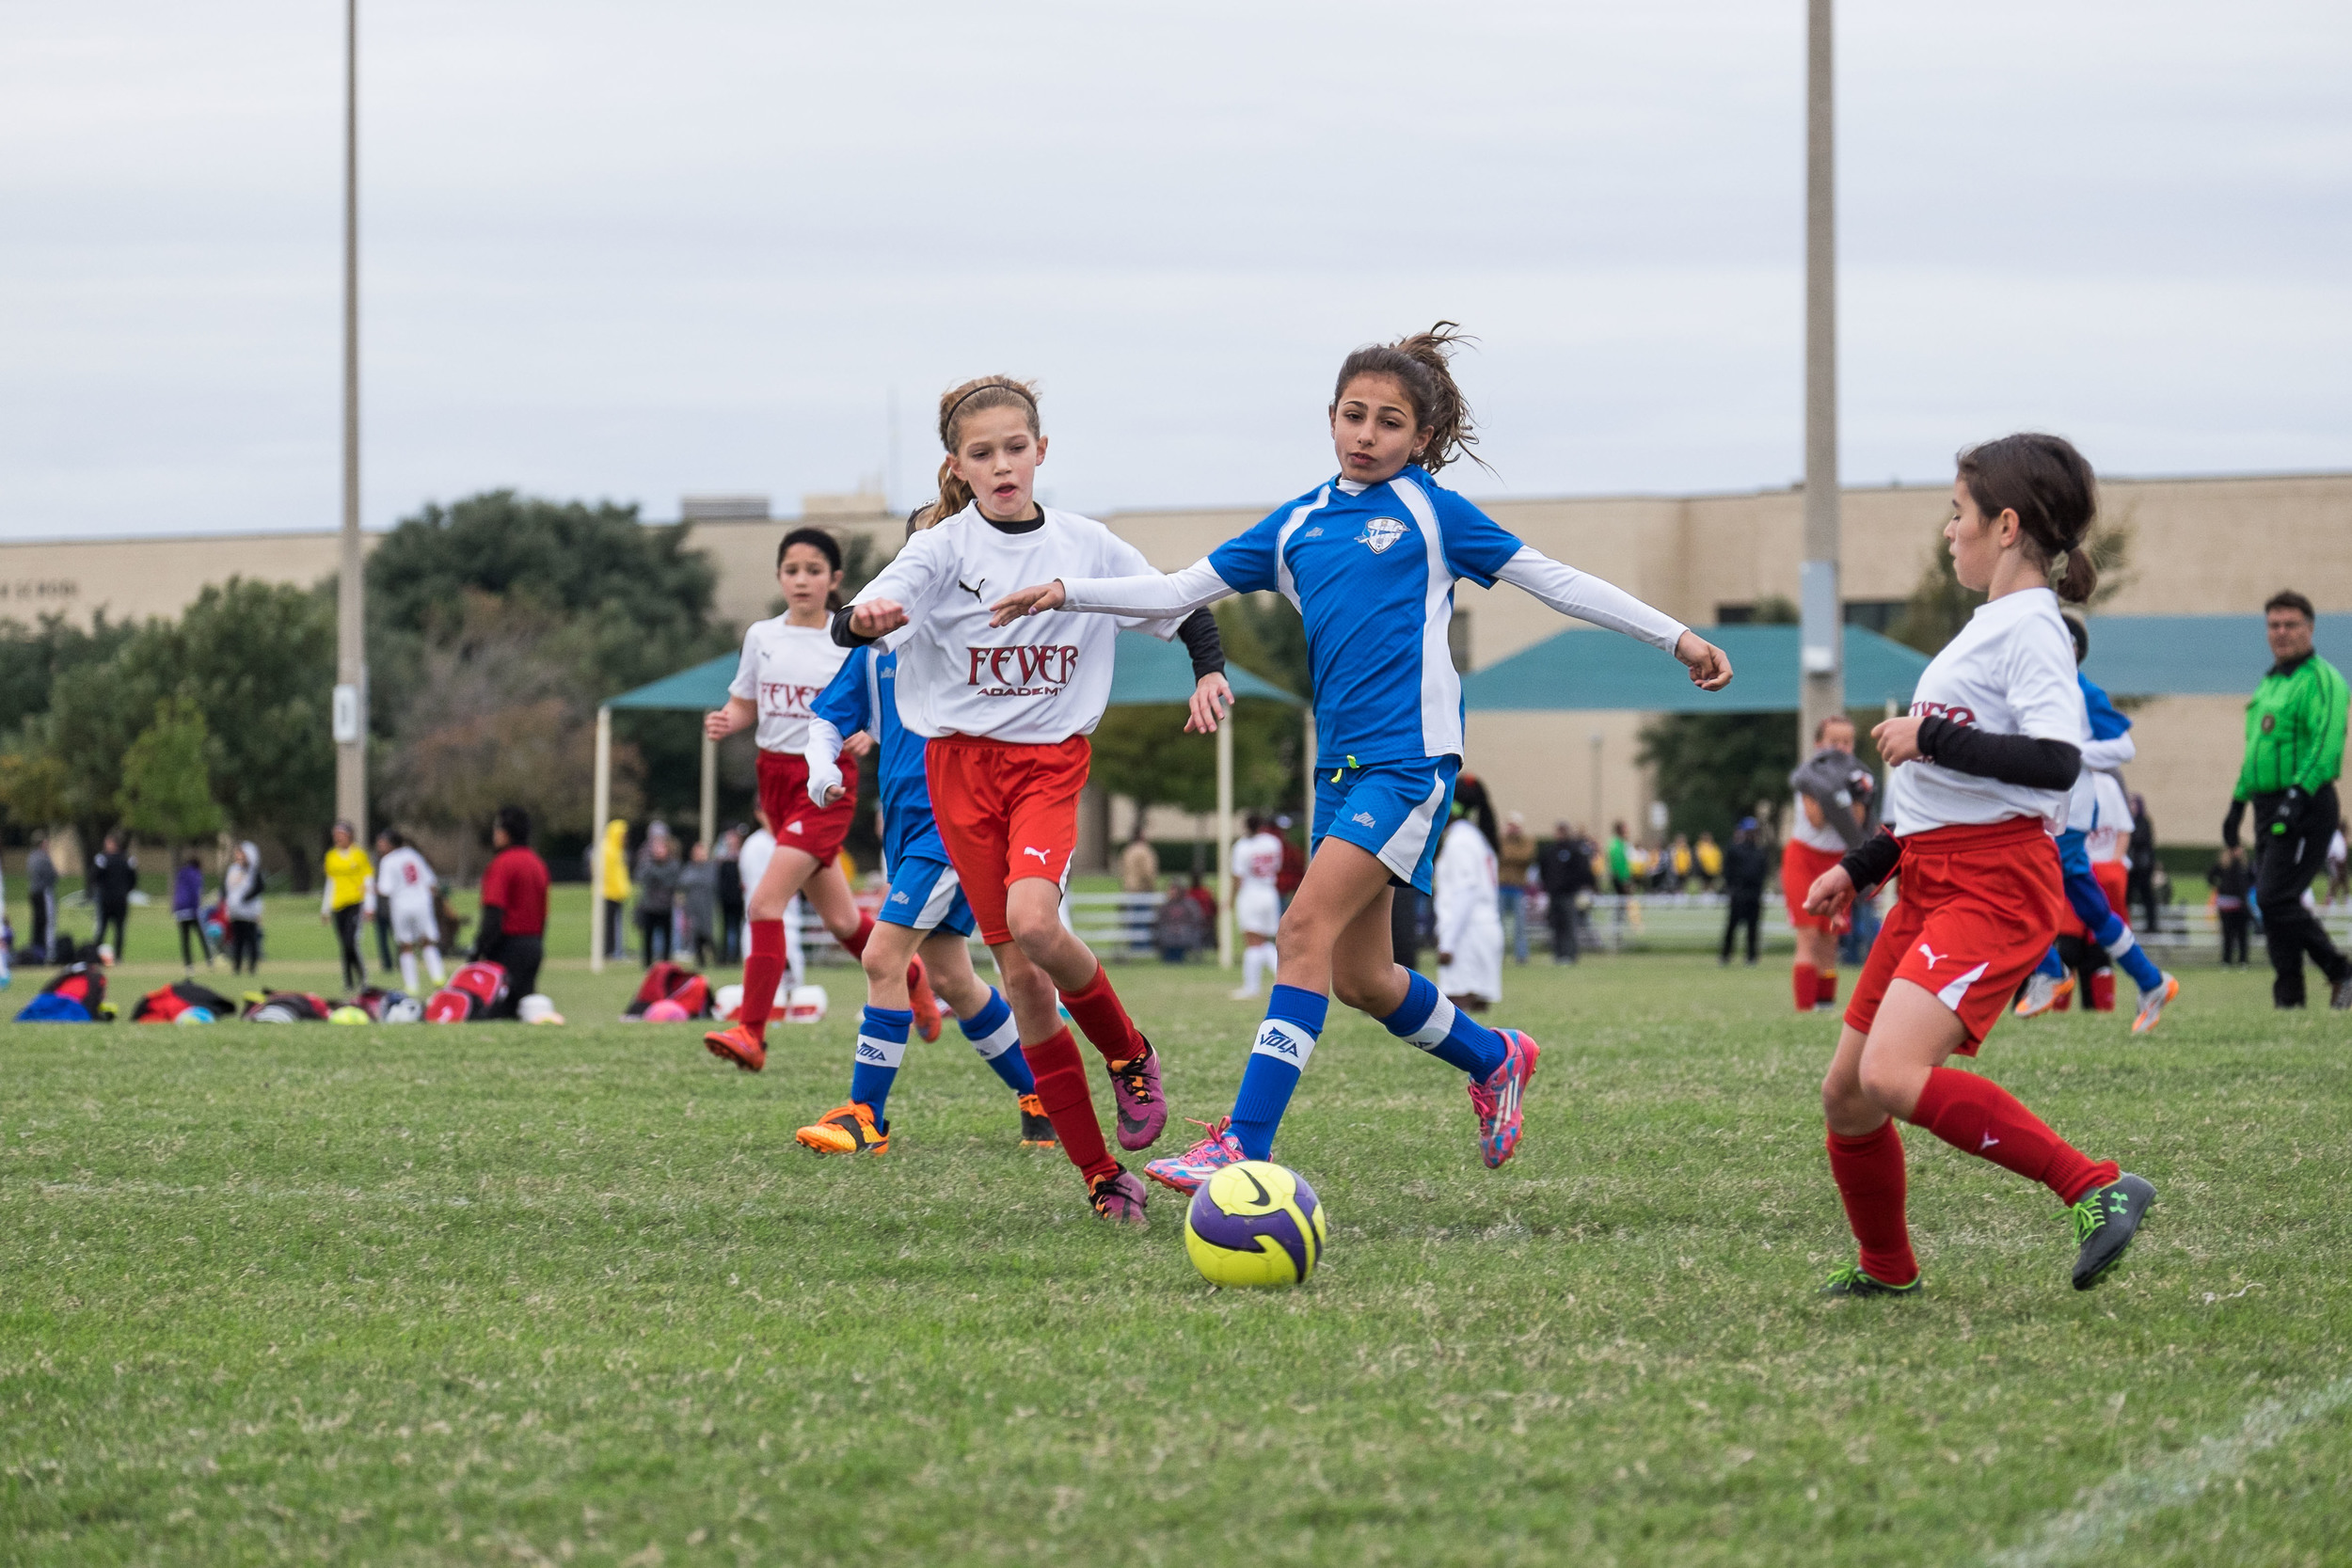 Ella's team also won their first post-season tournament. It was a long, cold weekend full of games, but totally worth seeing the girls' smiles as they ran off the field of the final game.